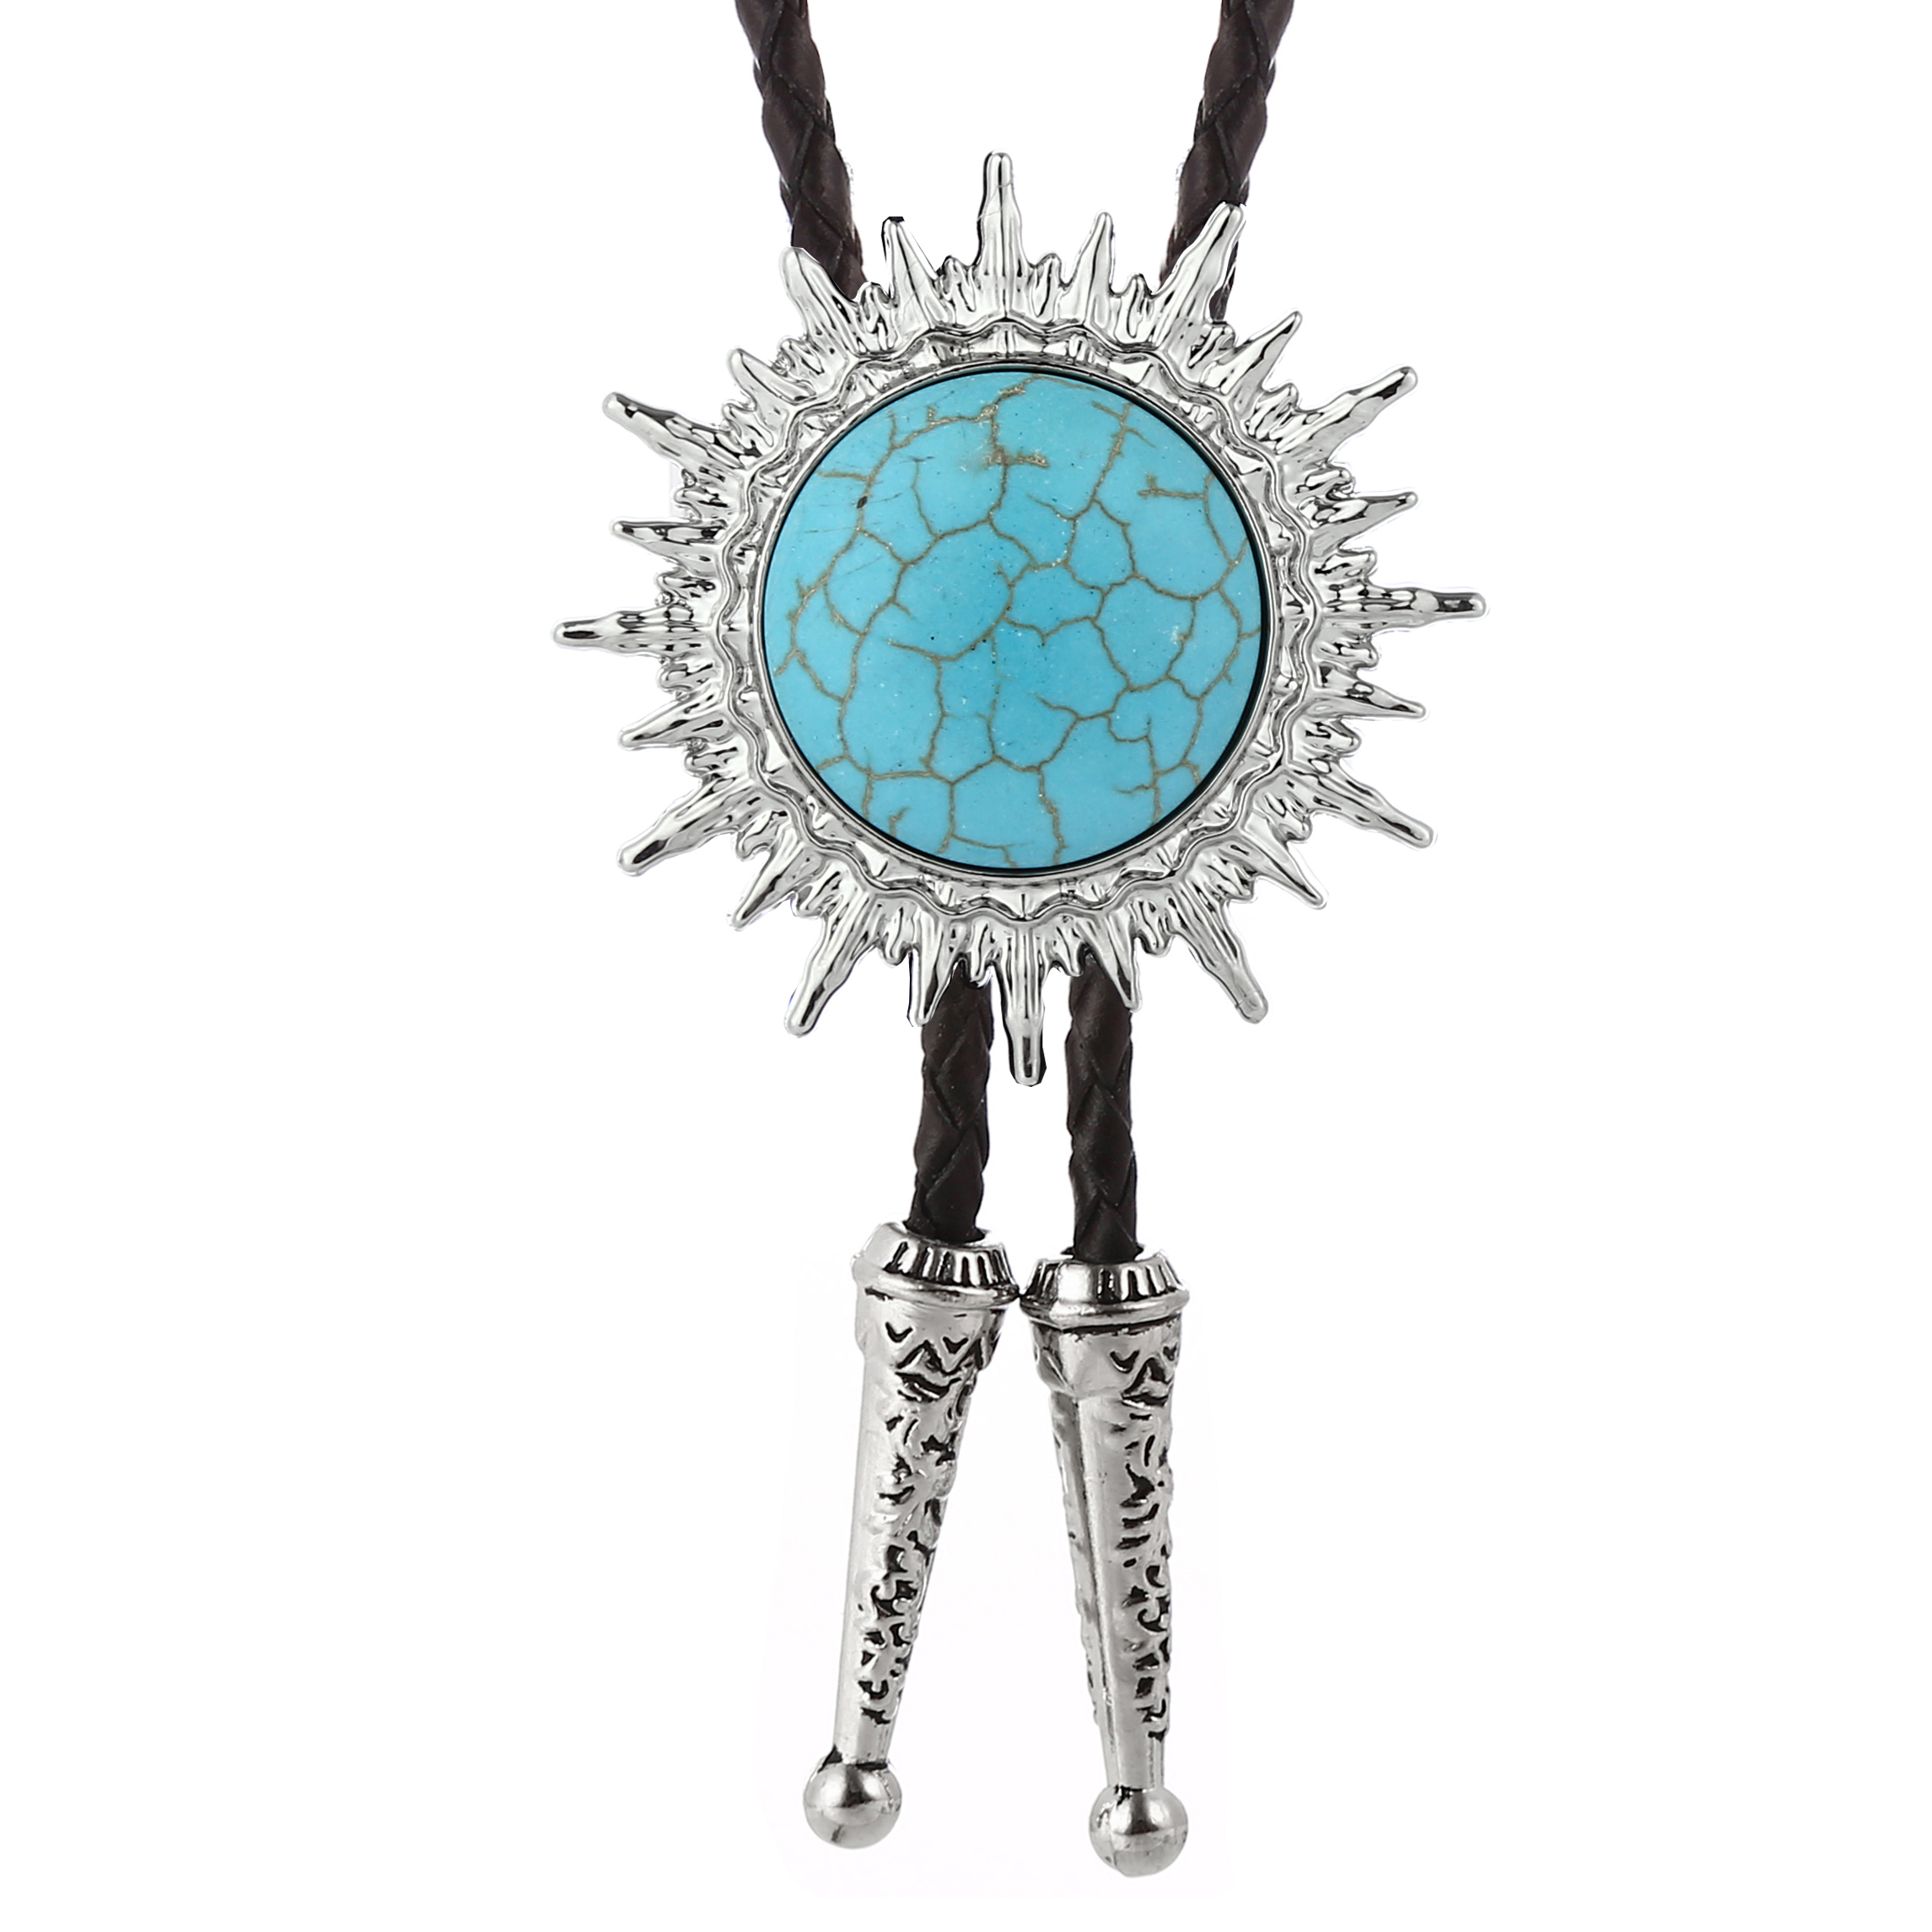 Solar System Natural Stone Metal Bolo Tie Wedding Gift Men's Fashion Accessories Women's Casual Necklace